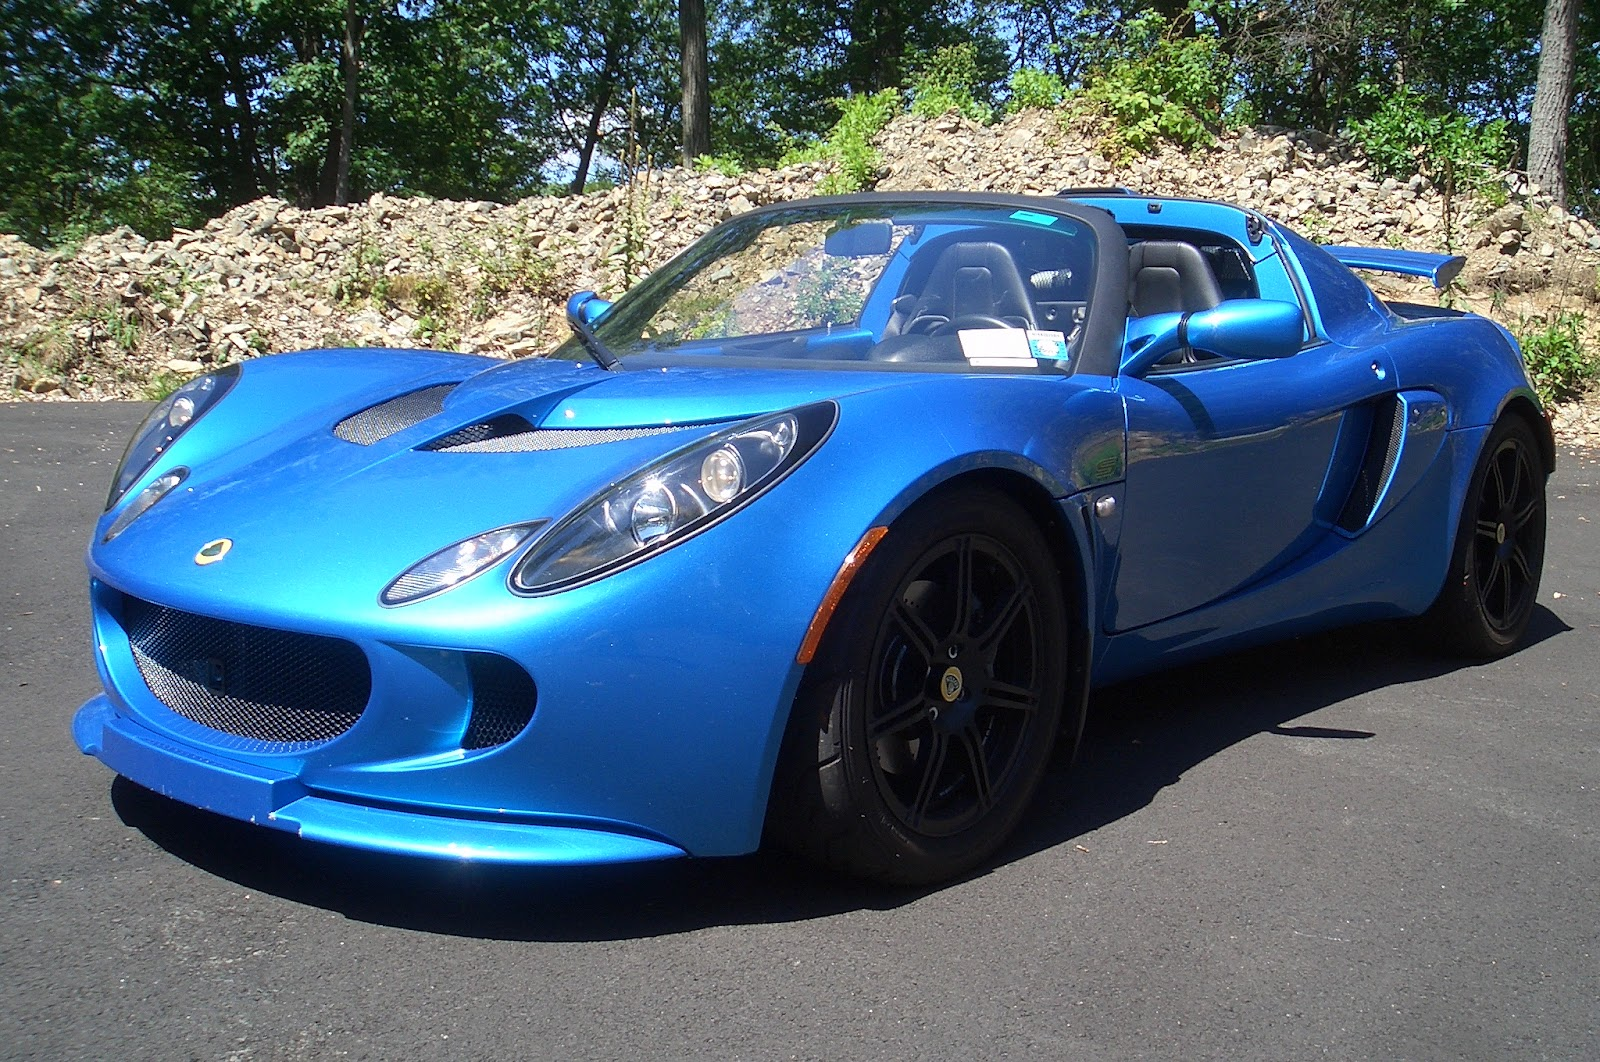 cars lotus exige sport sports 2007 cool roadster automobile wallpapers interior google thread thats ass cloudlakes vehicle been visit taken